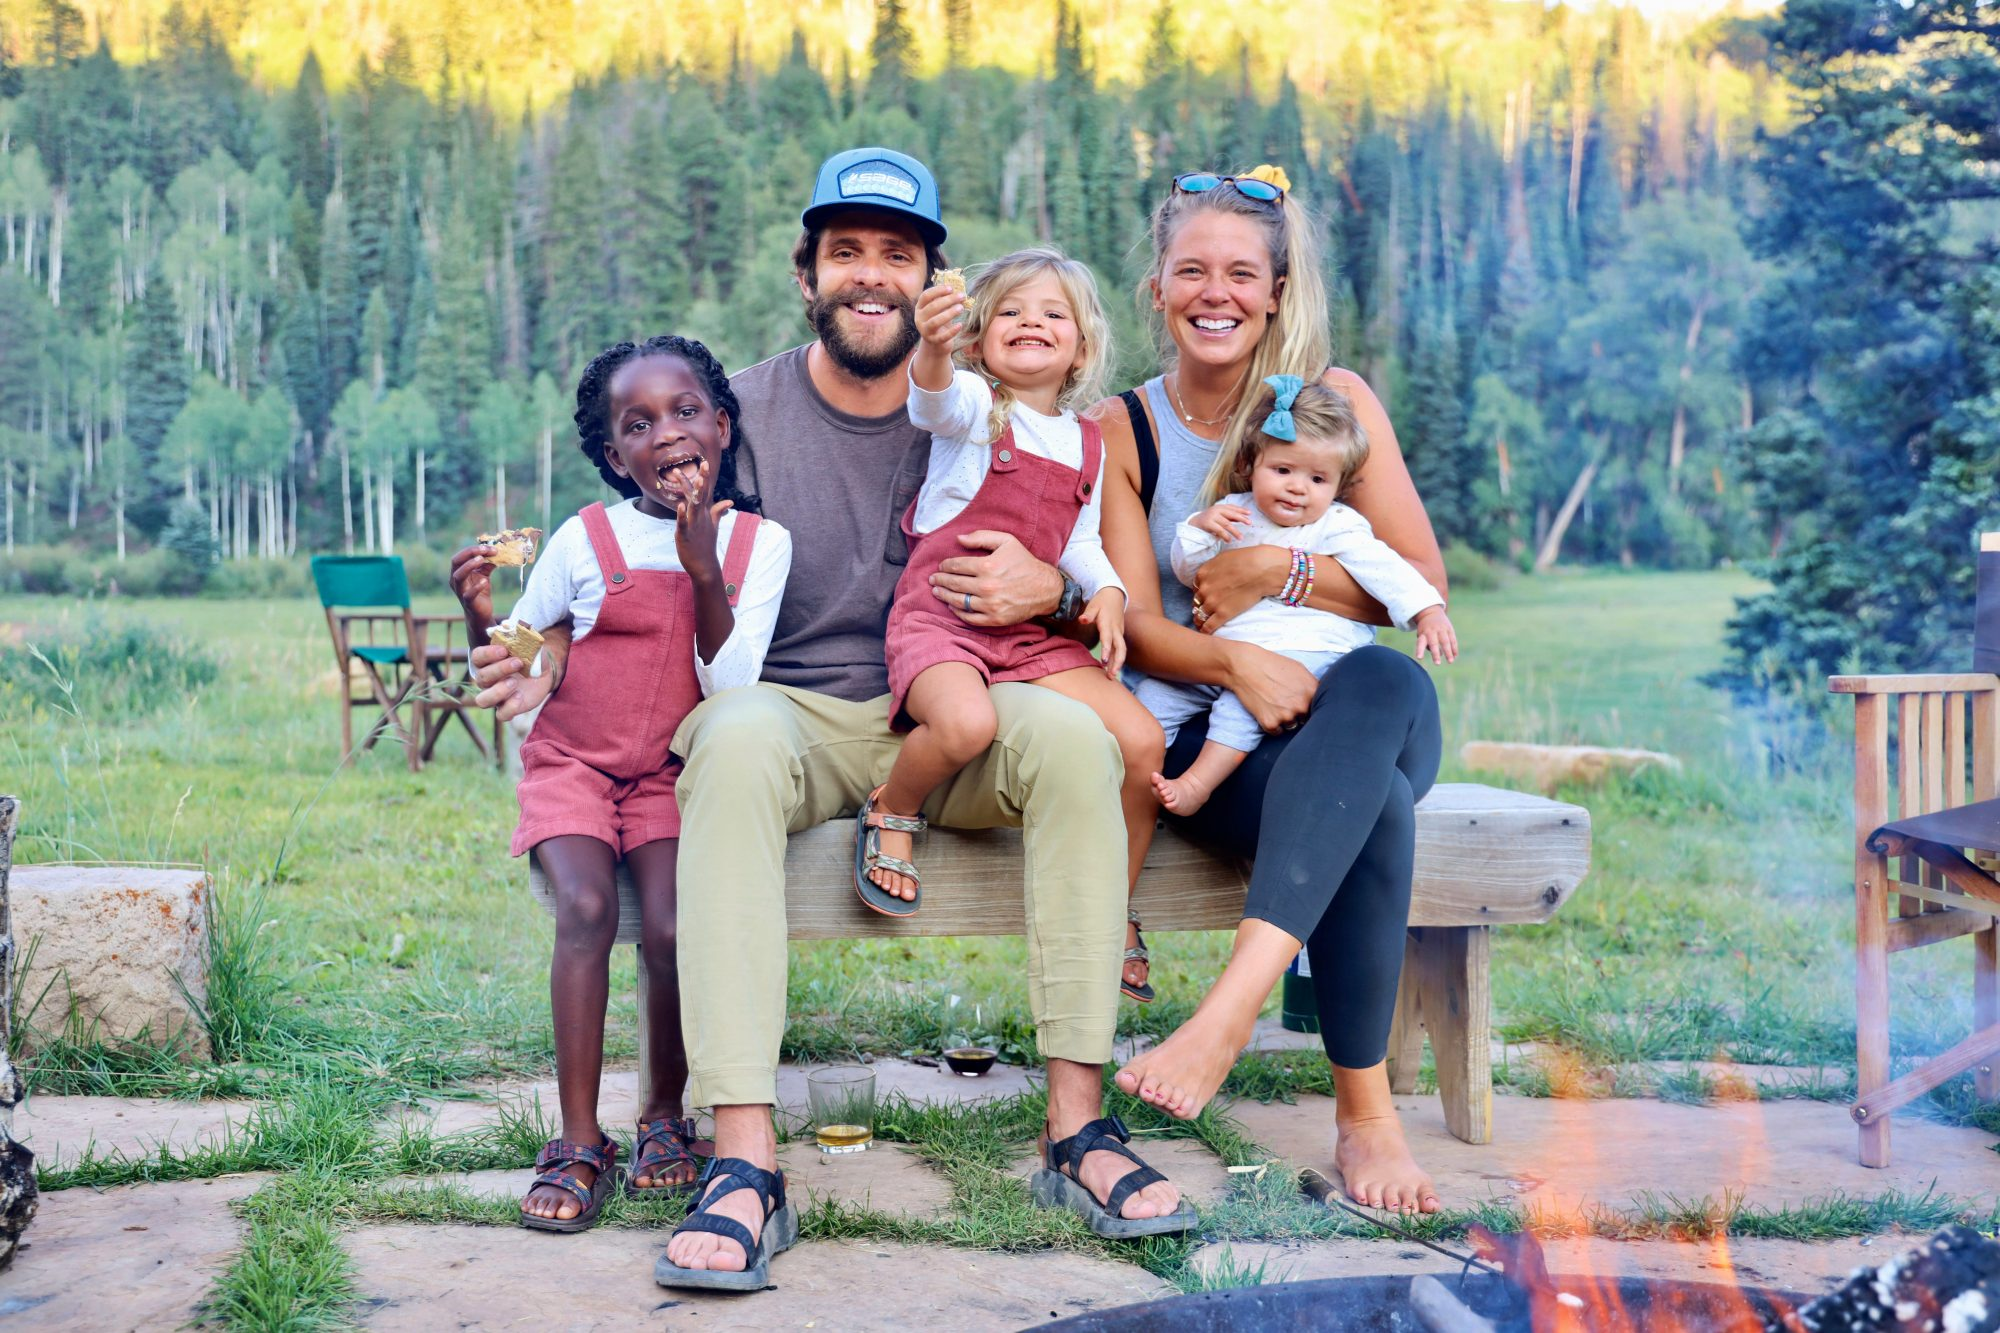 thomas rhett and lauren akins with their family